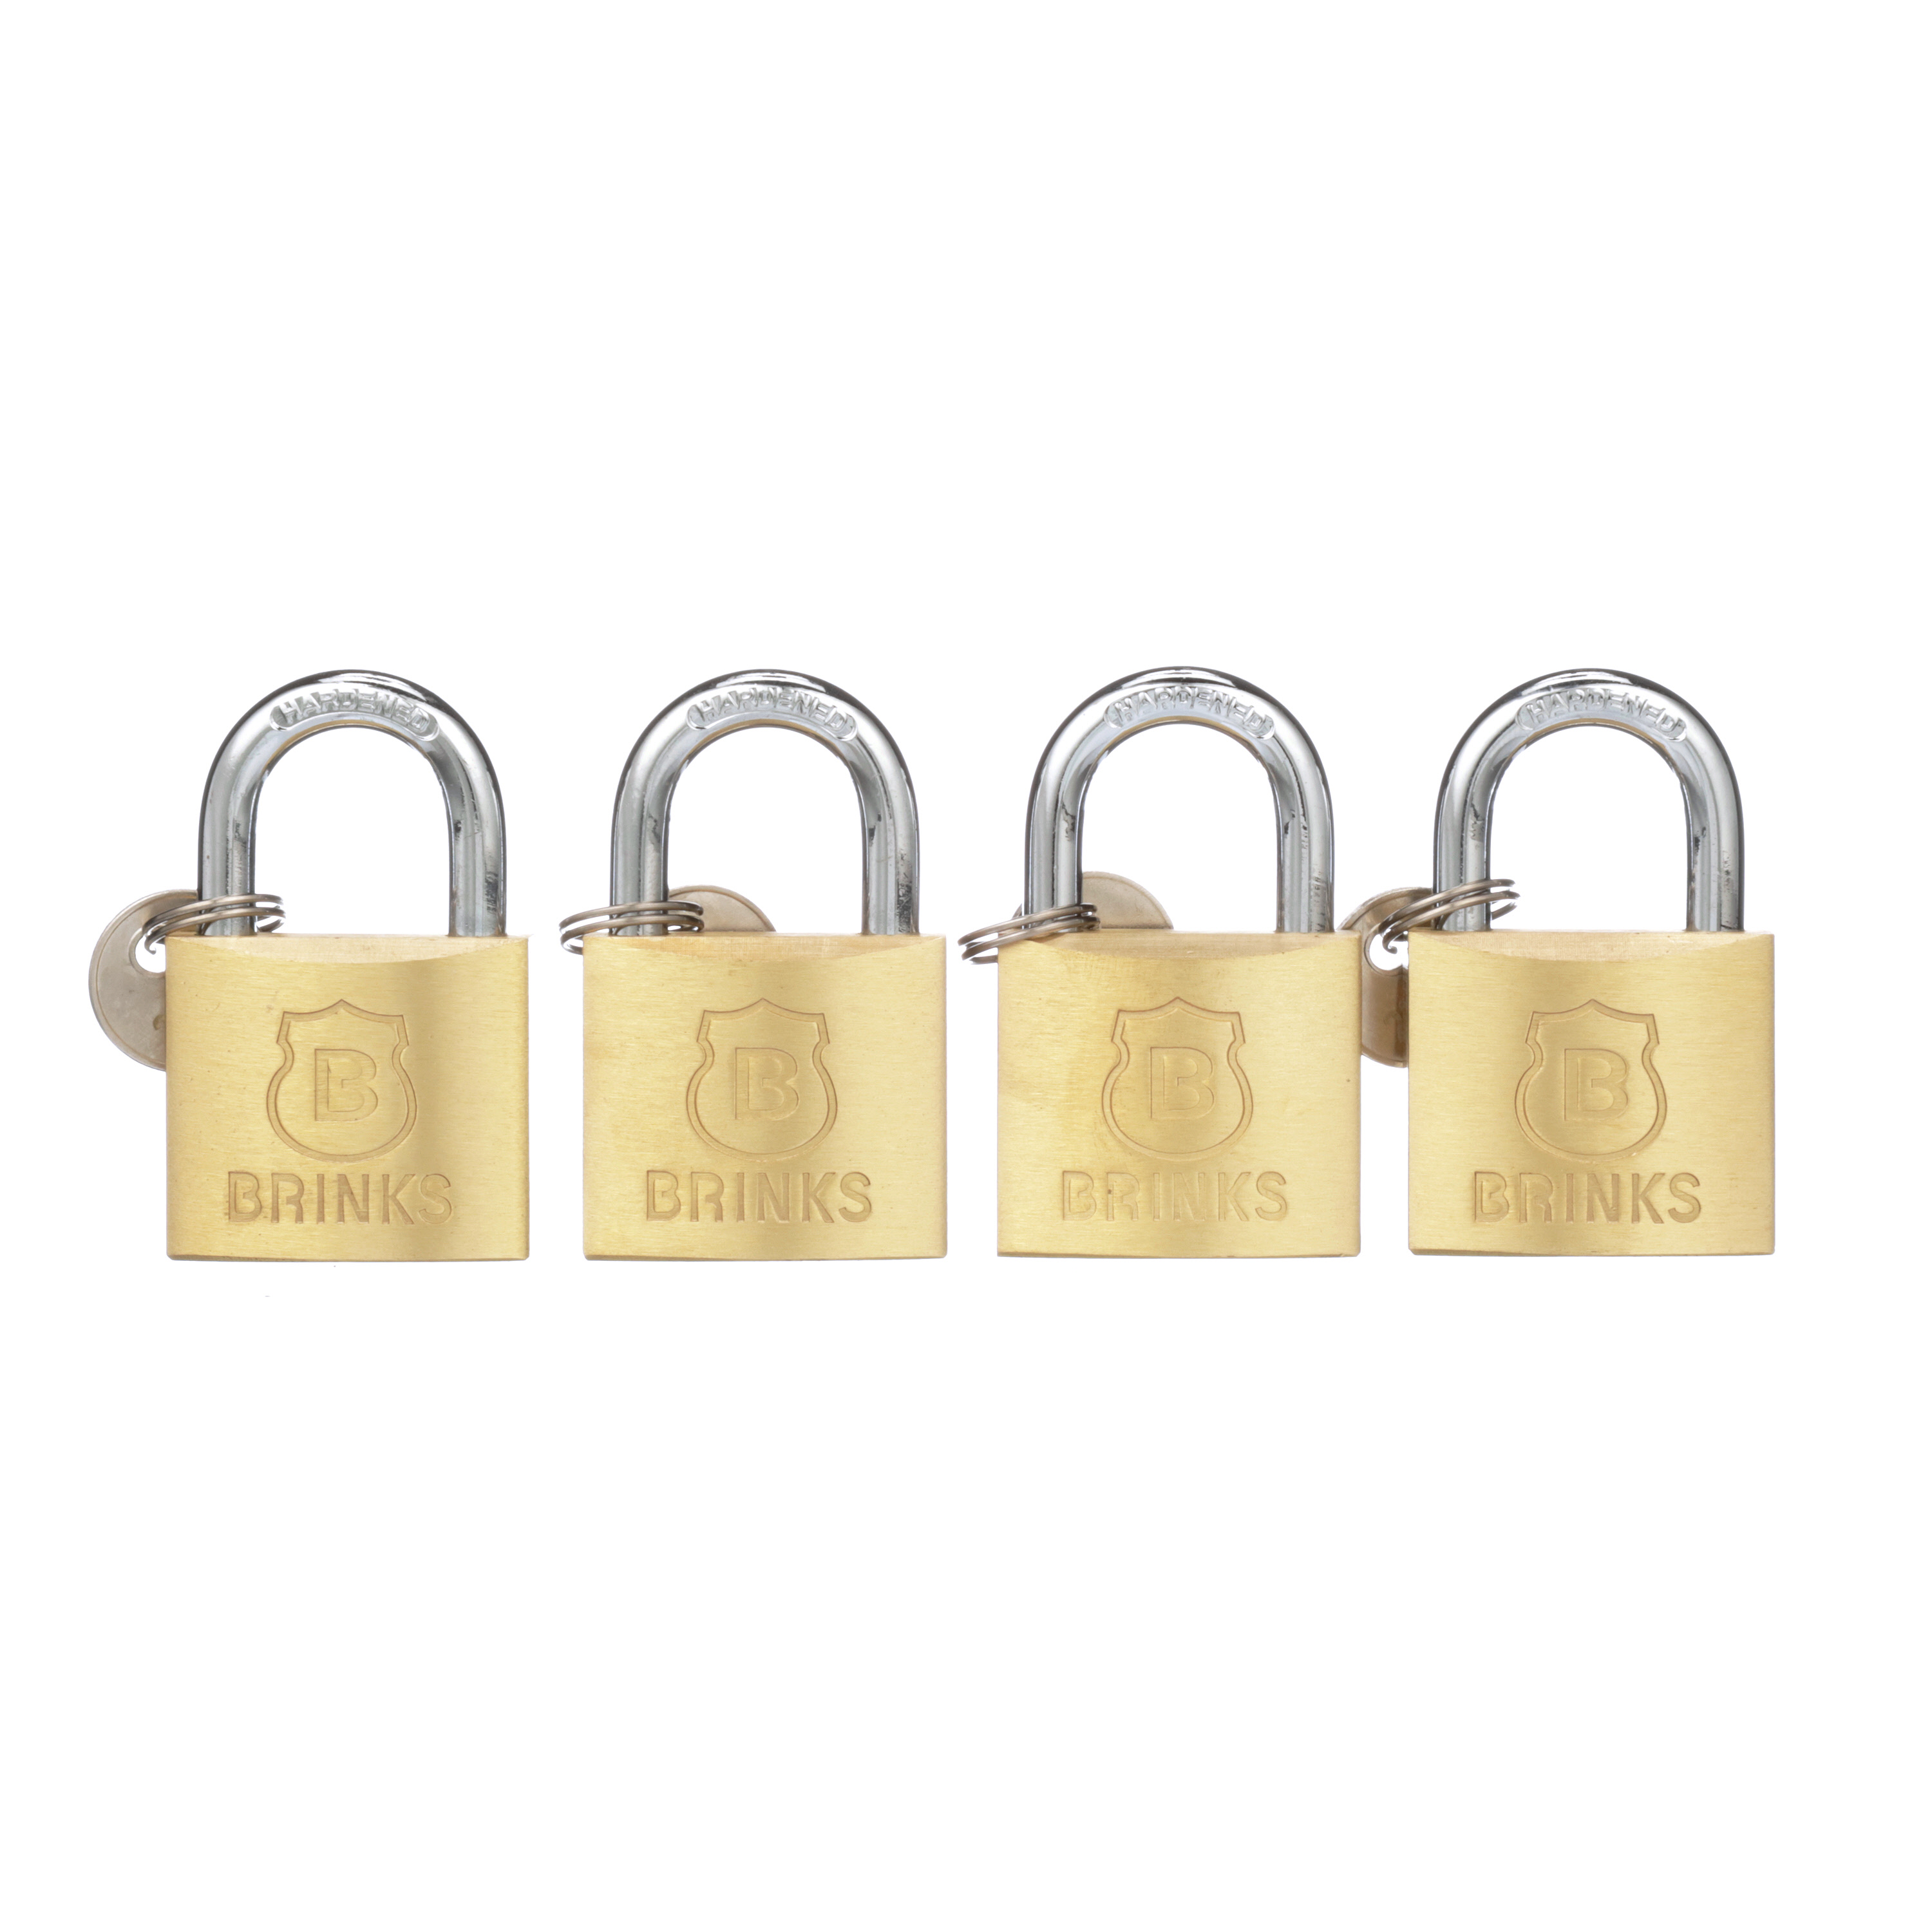 Brink's 40mm Solid Brass Padlock, 4-Pack by Hampton Products Int'l Corp.